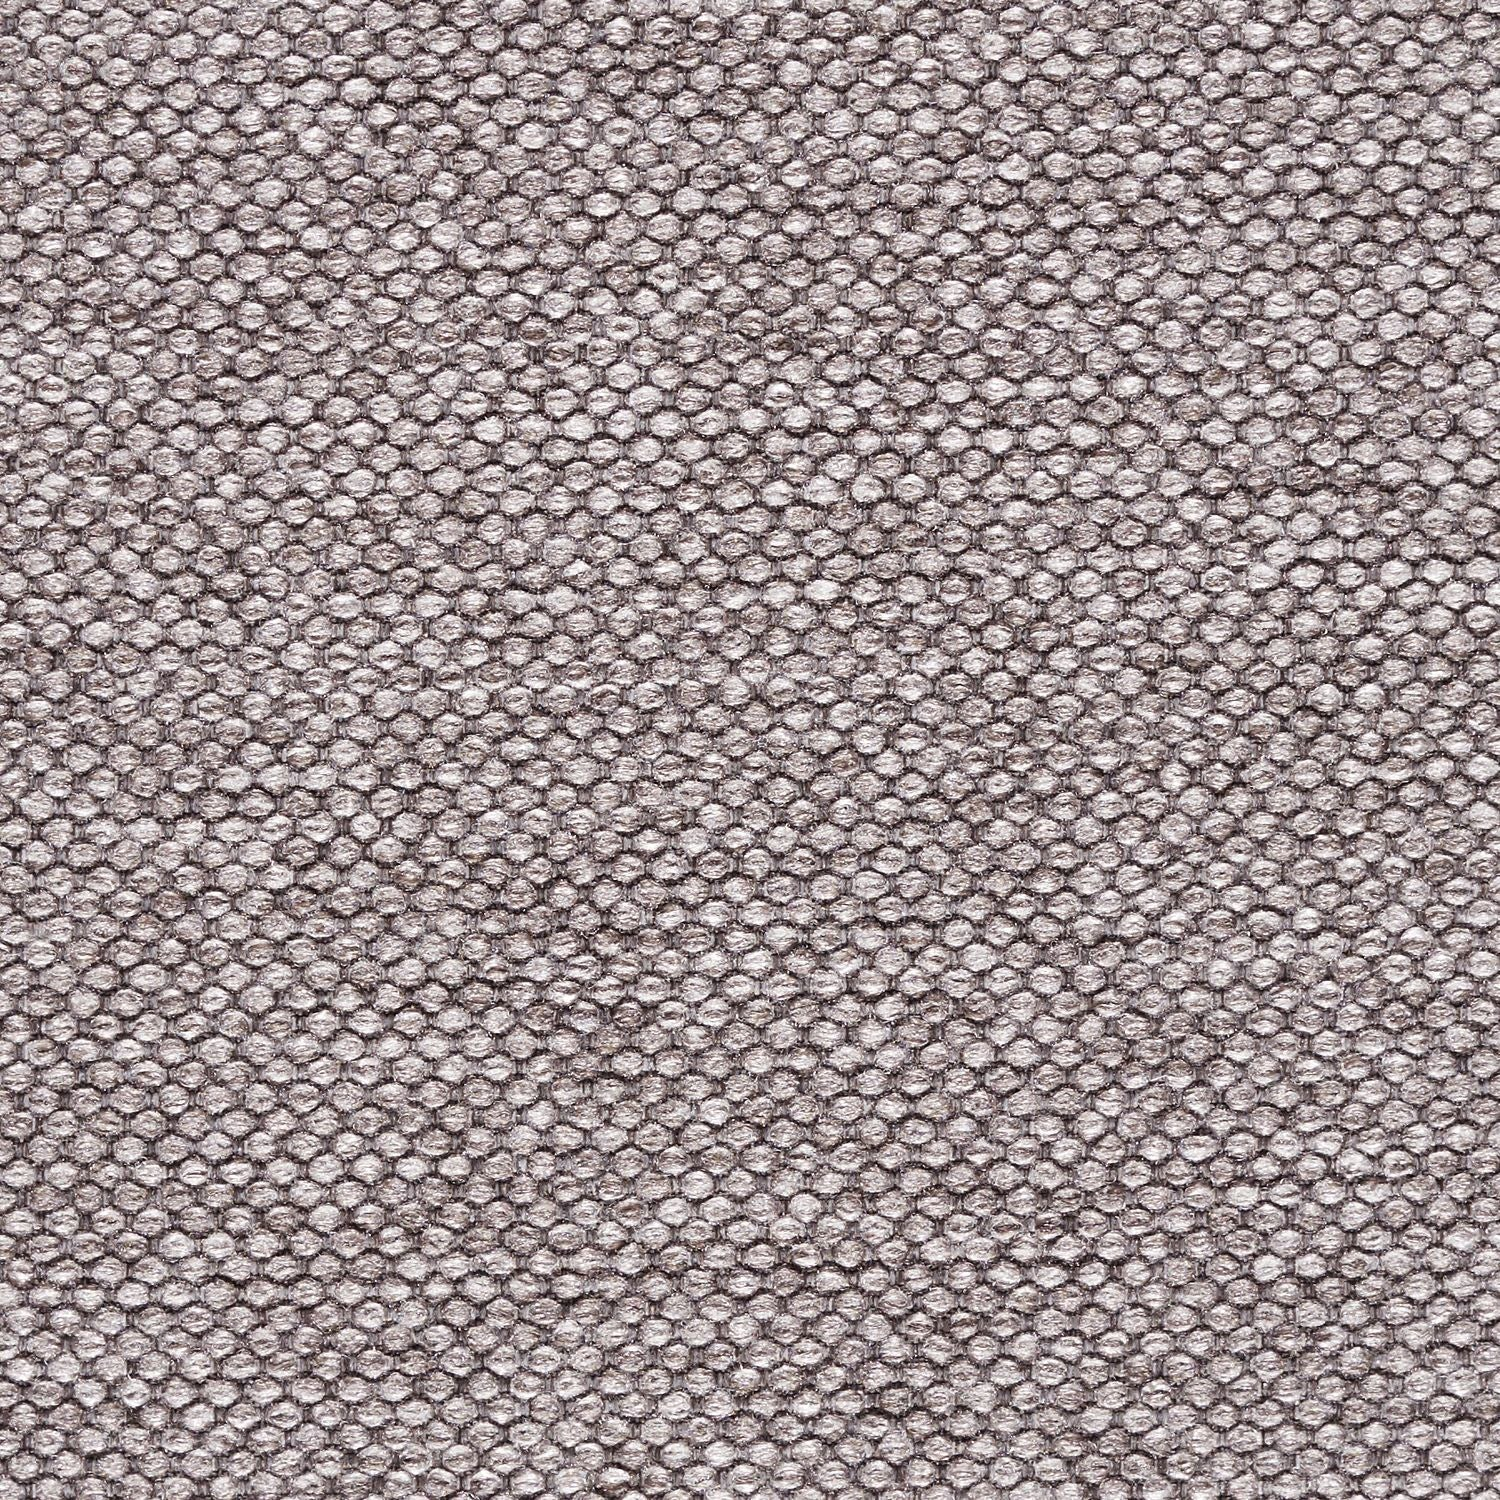 Digi Tweed - Loam Tweed - 4058 - 06